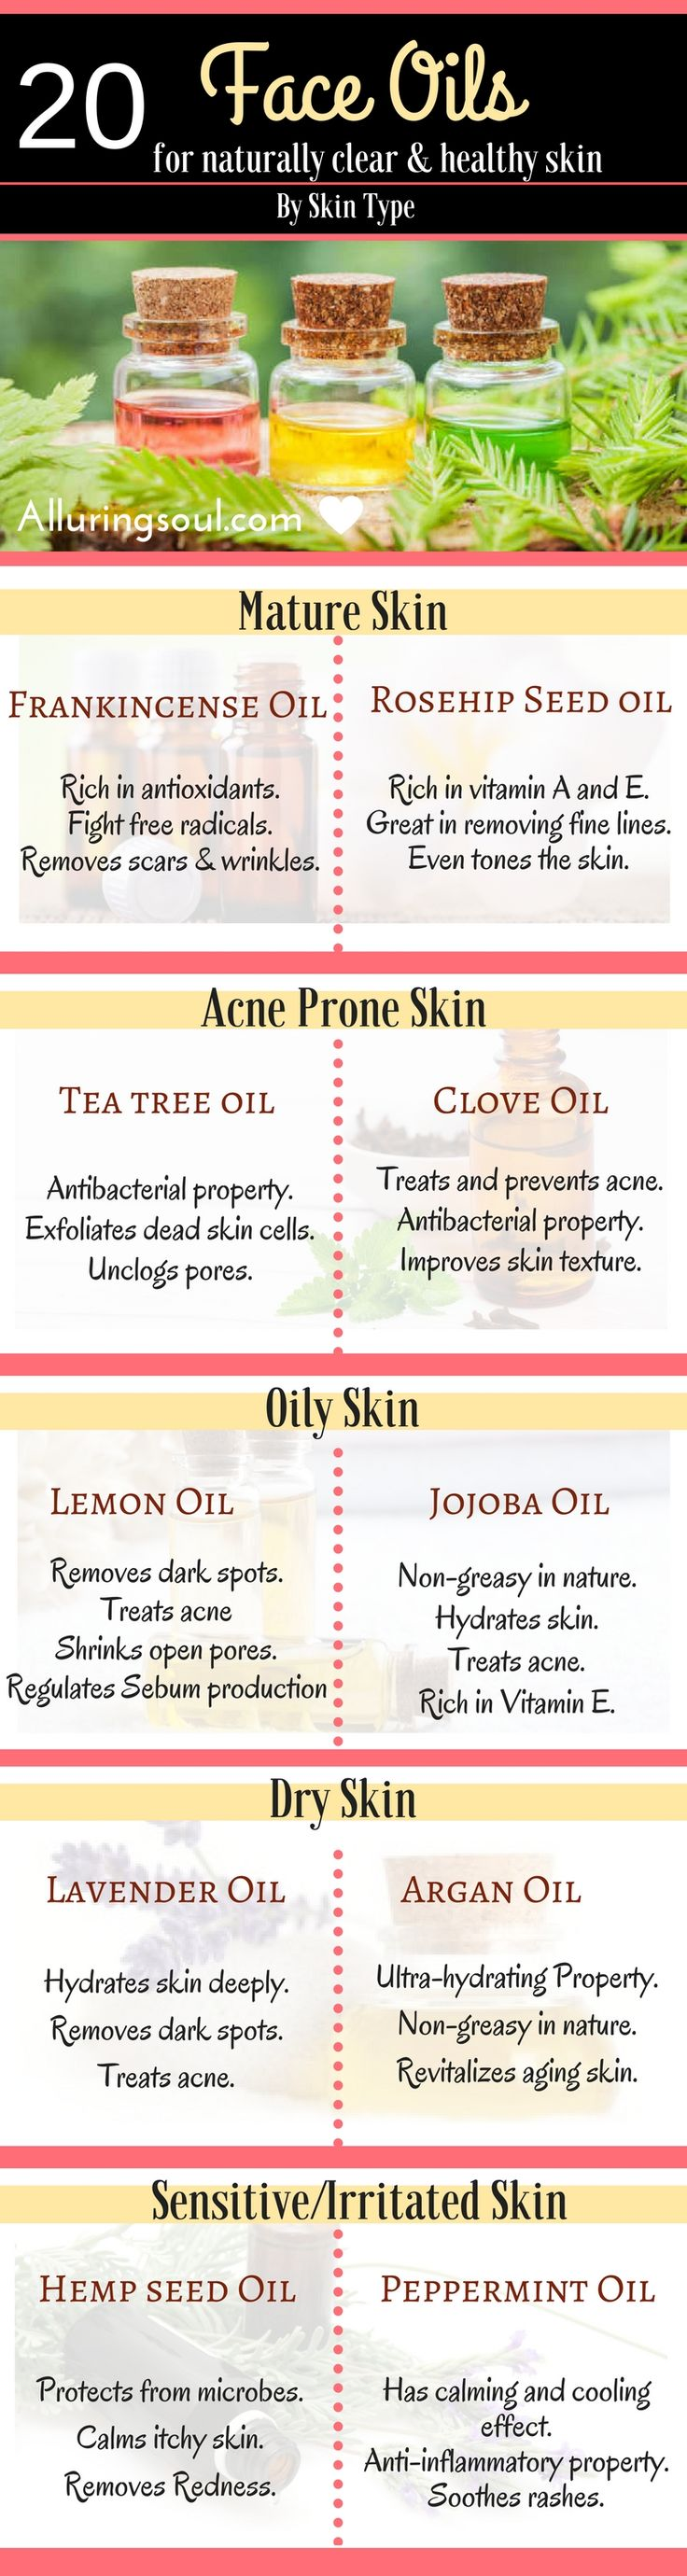 Face oils can do wonder on your skin. Whether you are suffering from acne or dry skin or oily skin or aging skin, face oil is the